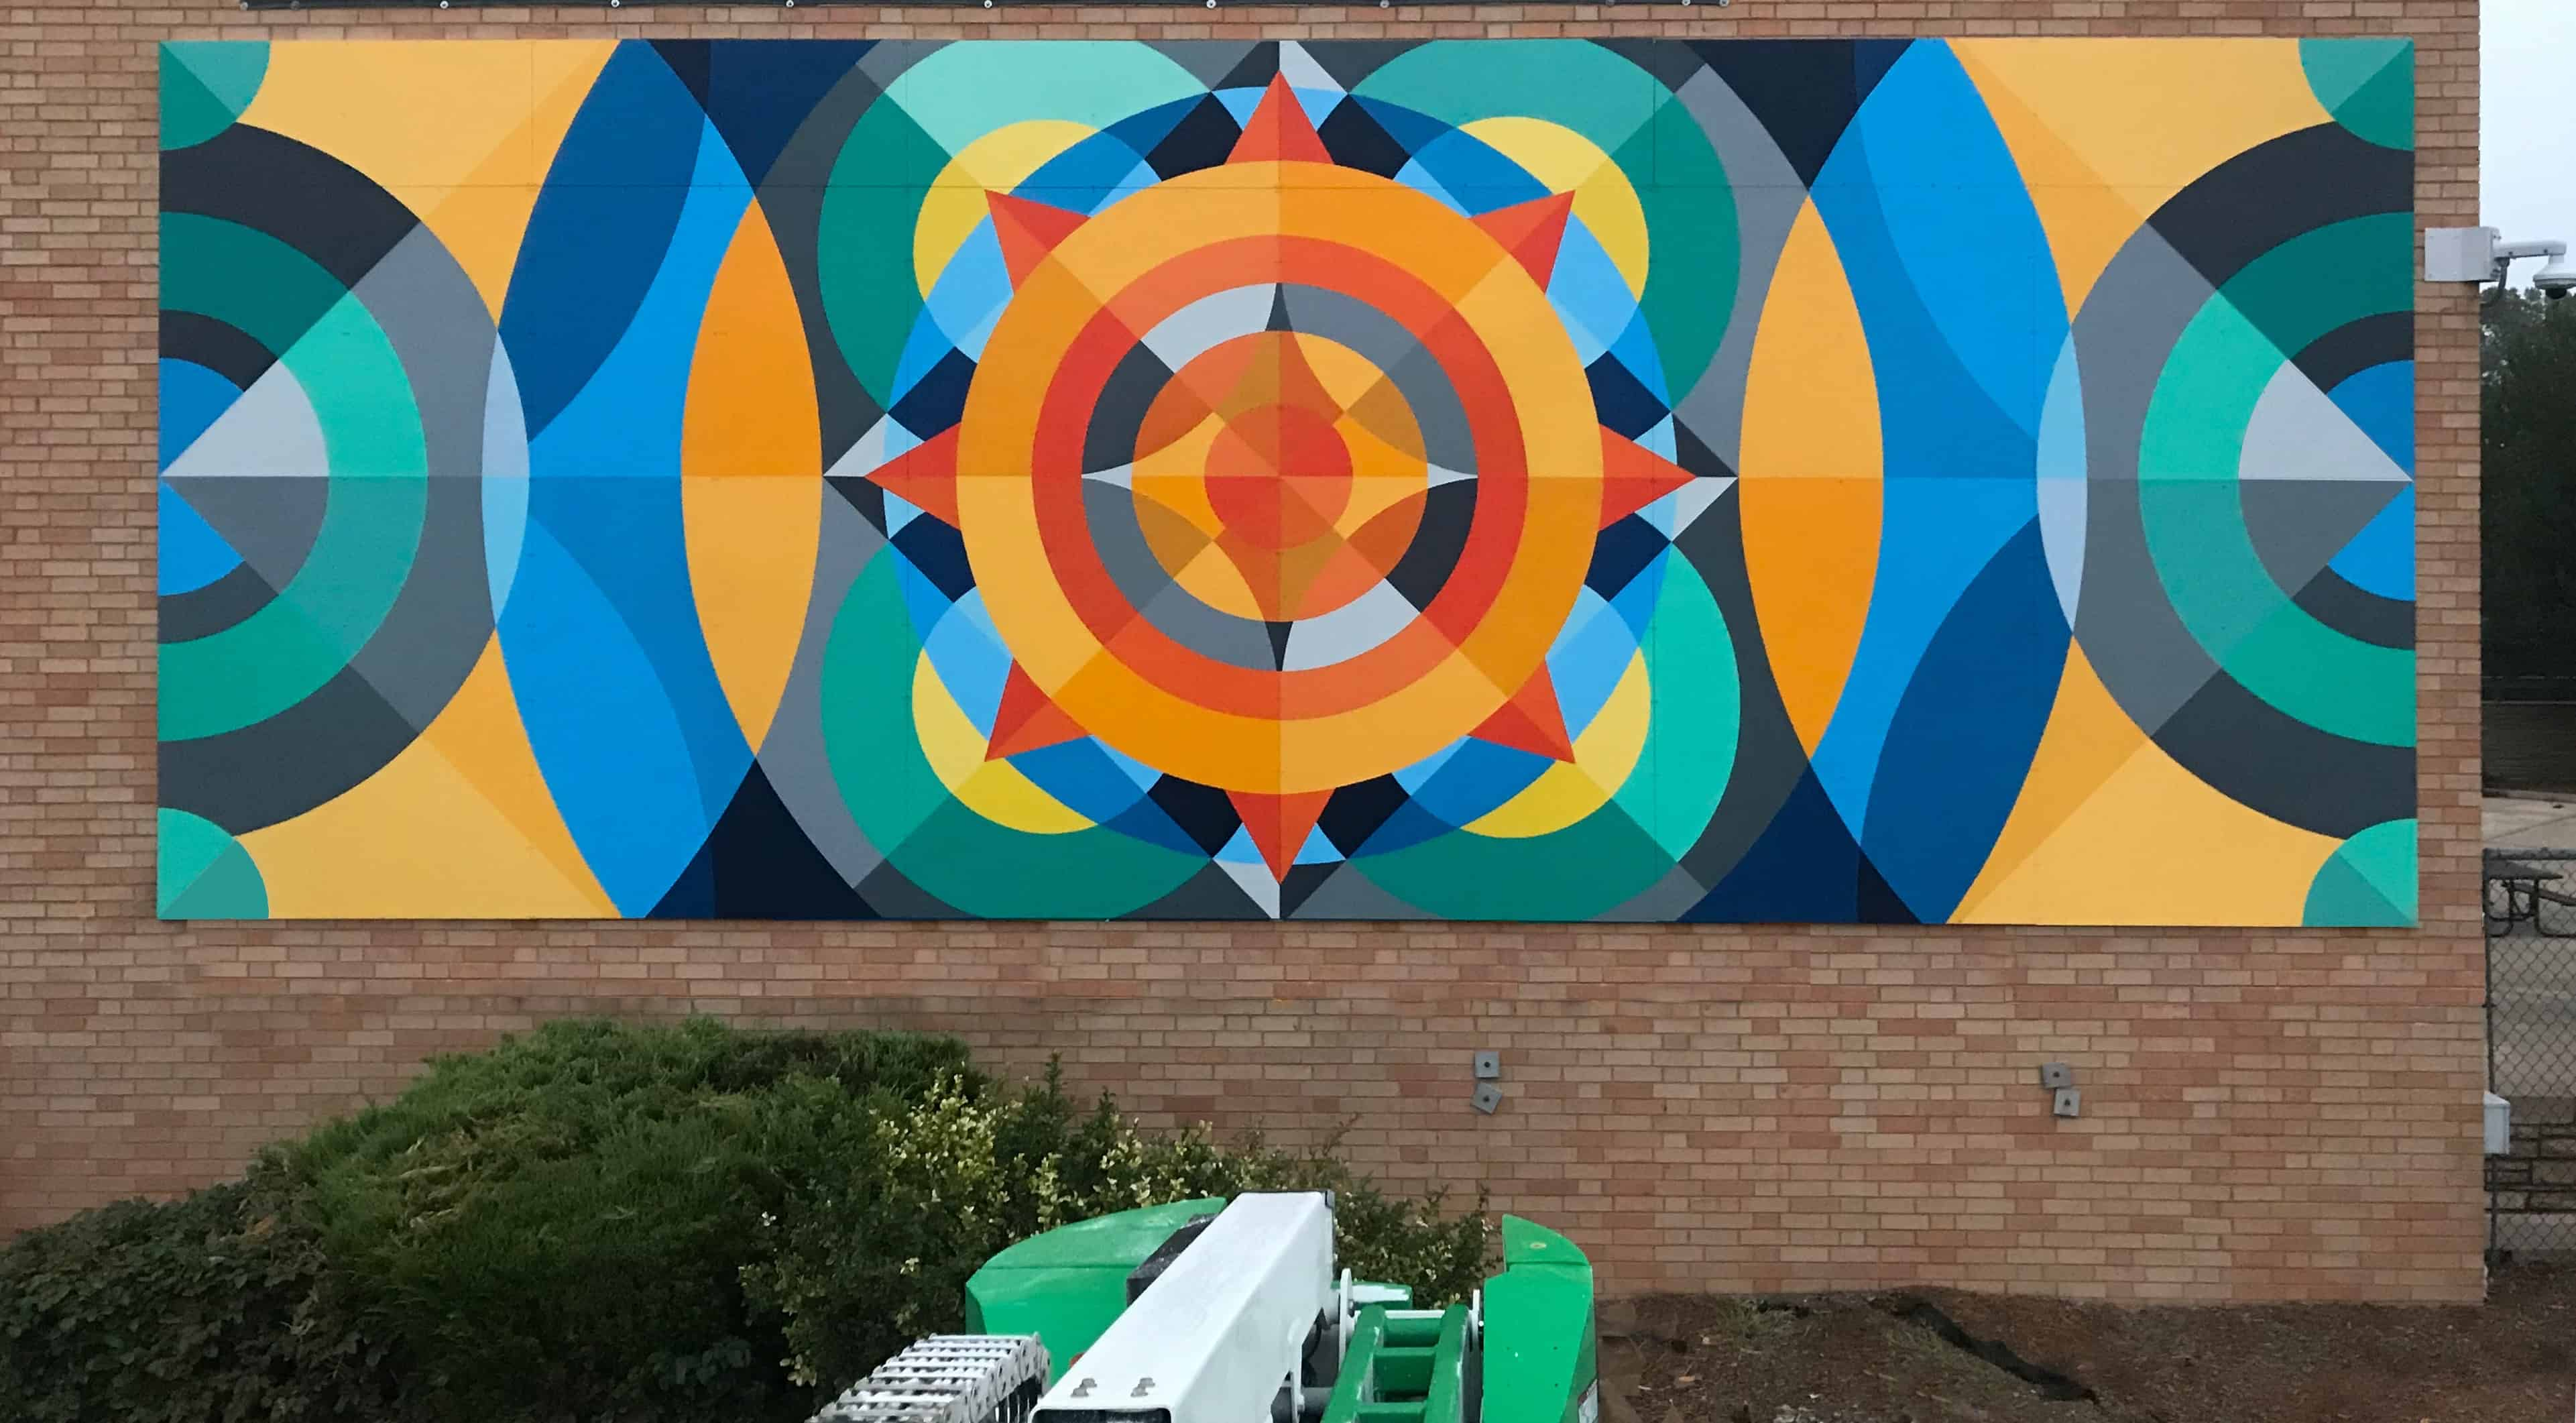 Life Water, Canvas for Change, Abraham Lincoln High School, Public Art, Mural